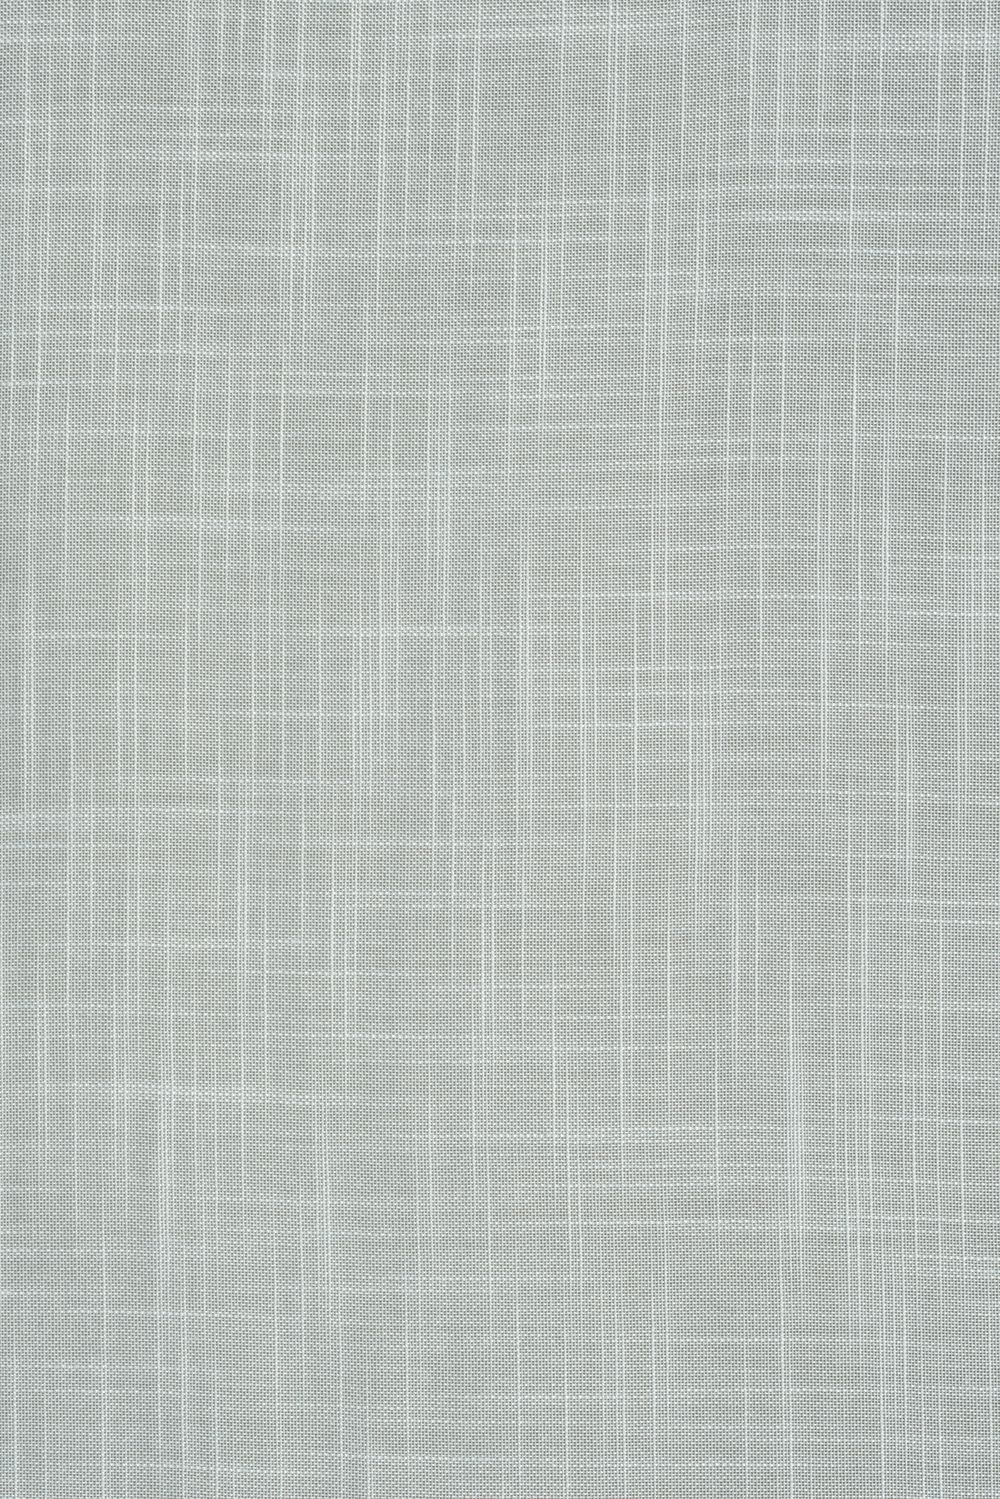 Photo of the fabric Attica Seafoam swatch by Zepel. Use for Curtains. Style of Plain, Sheer, Texture